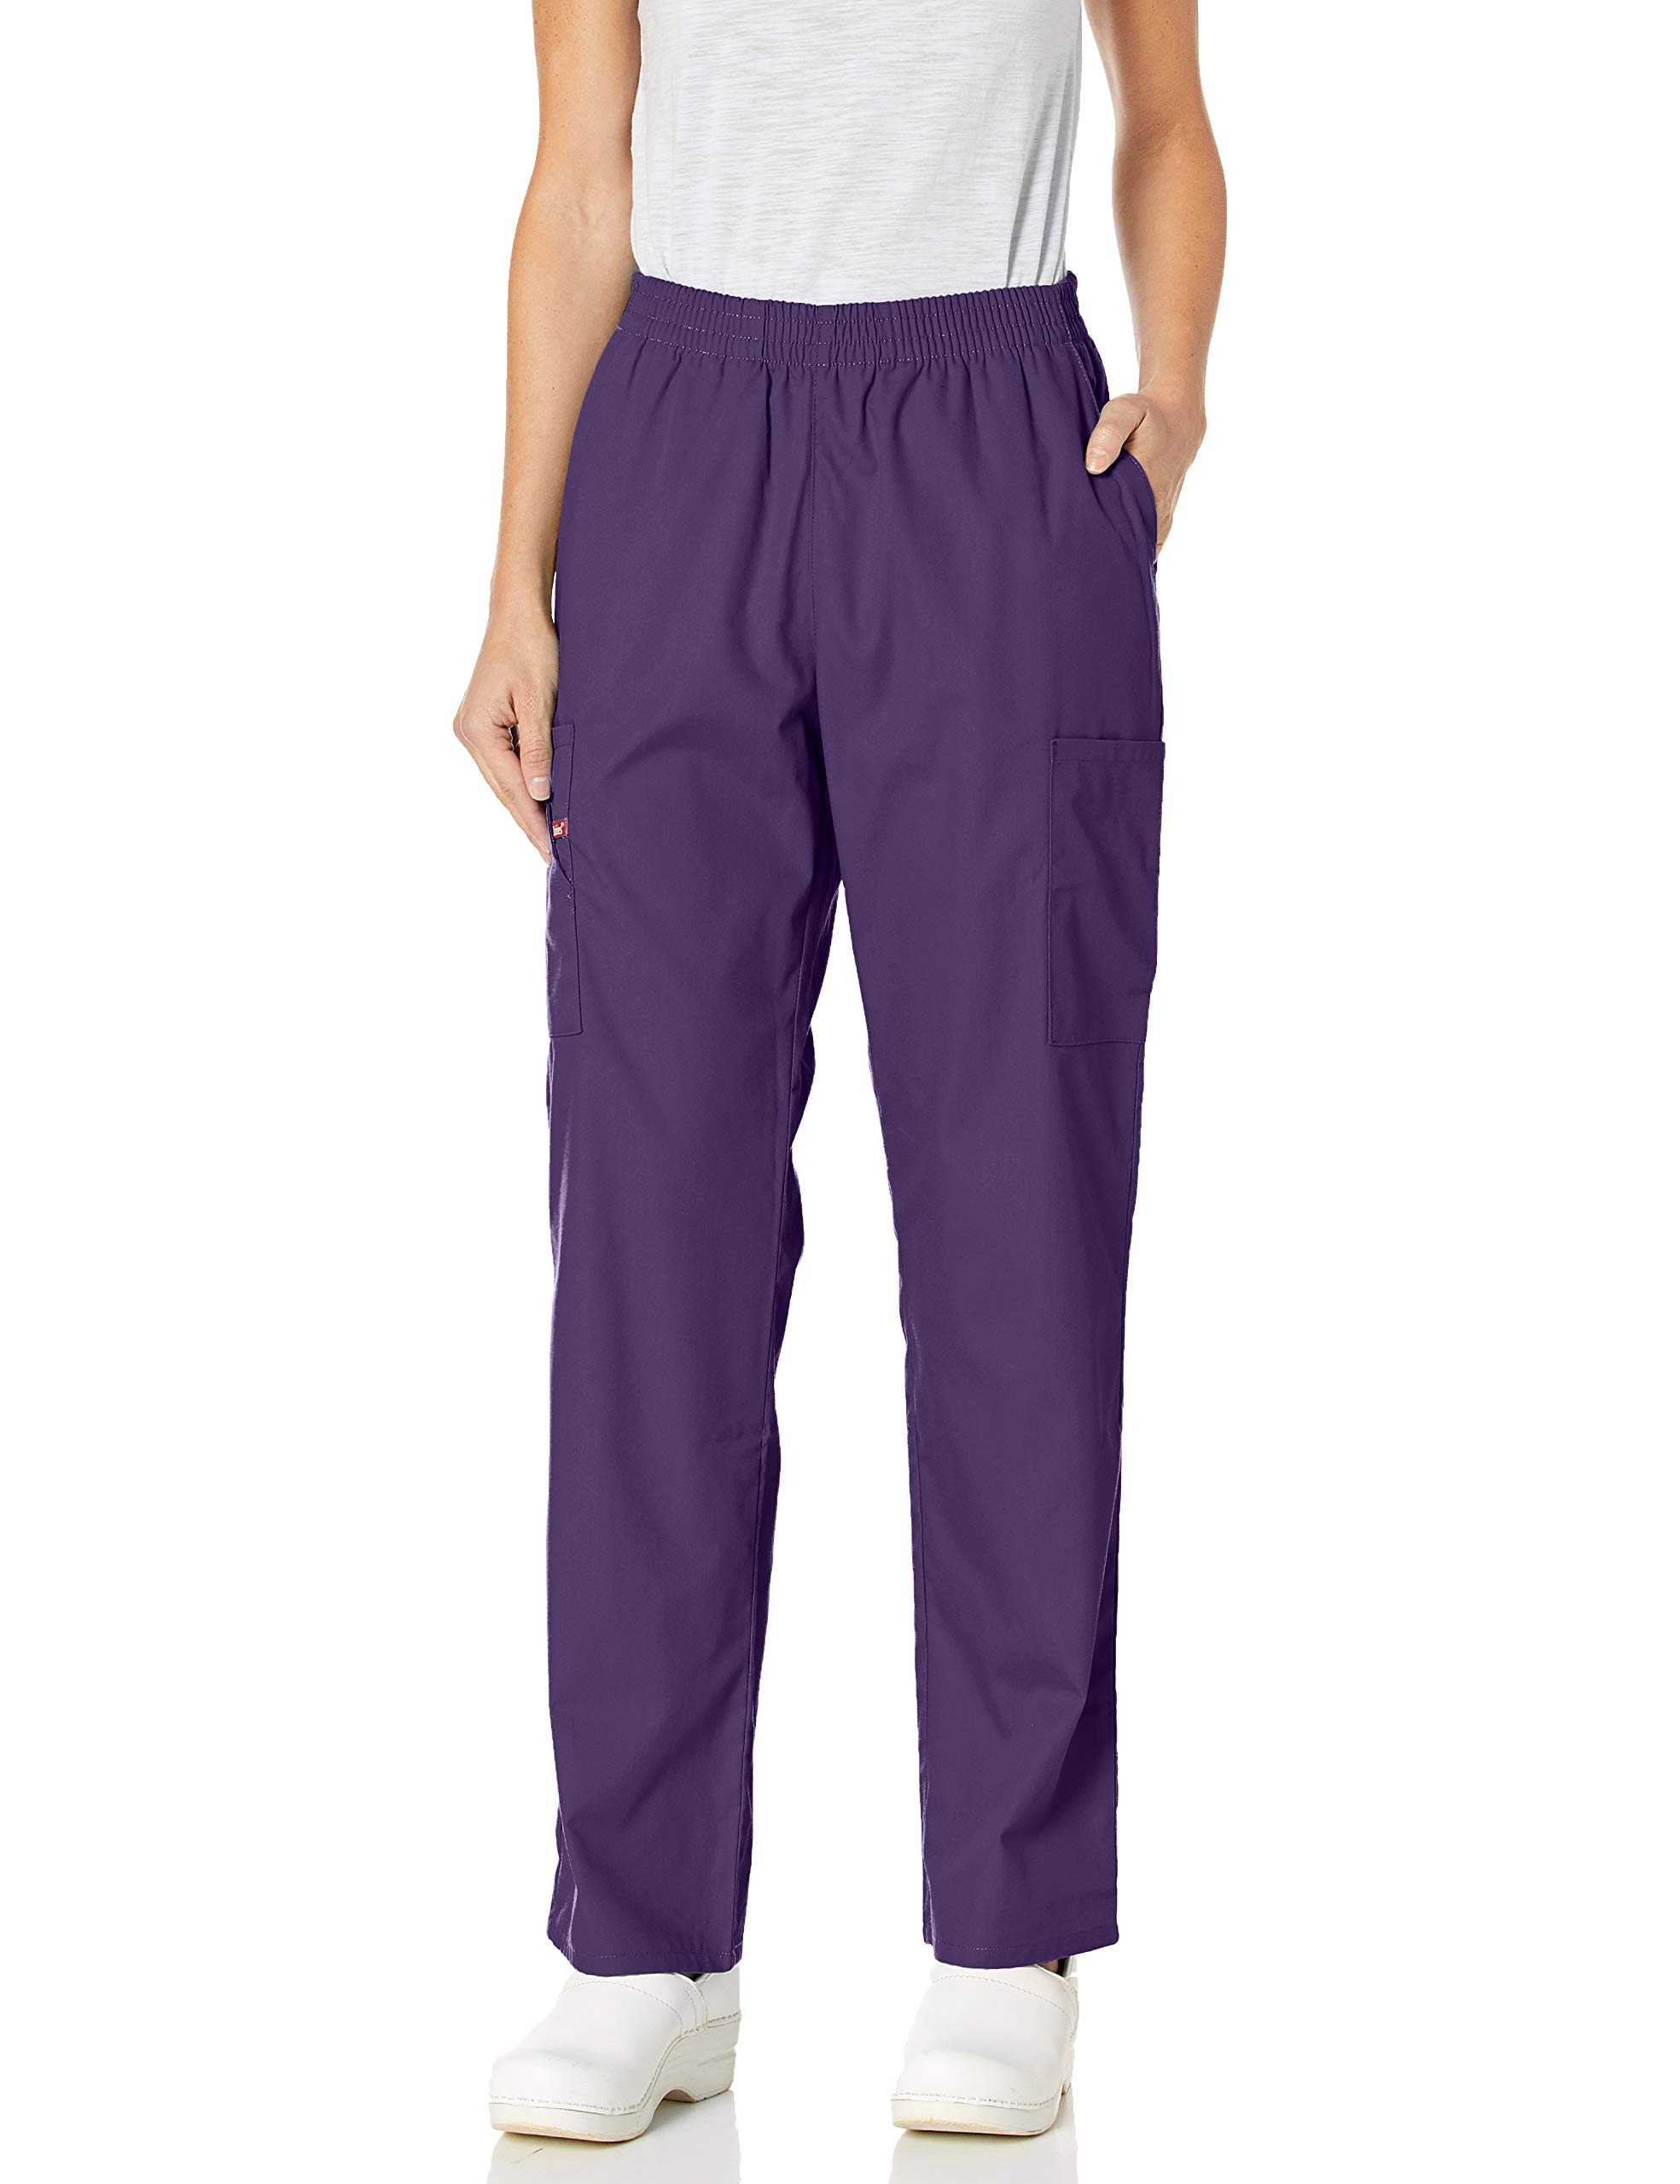 dickies EDS Signature Natural Rise Tapered Leg Pull-On Scrub Pant, 2XL, Grape by dickies